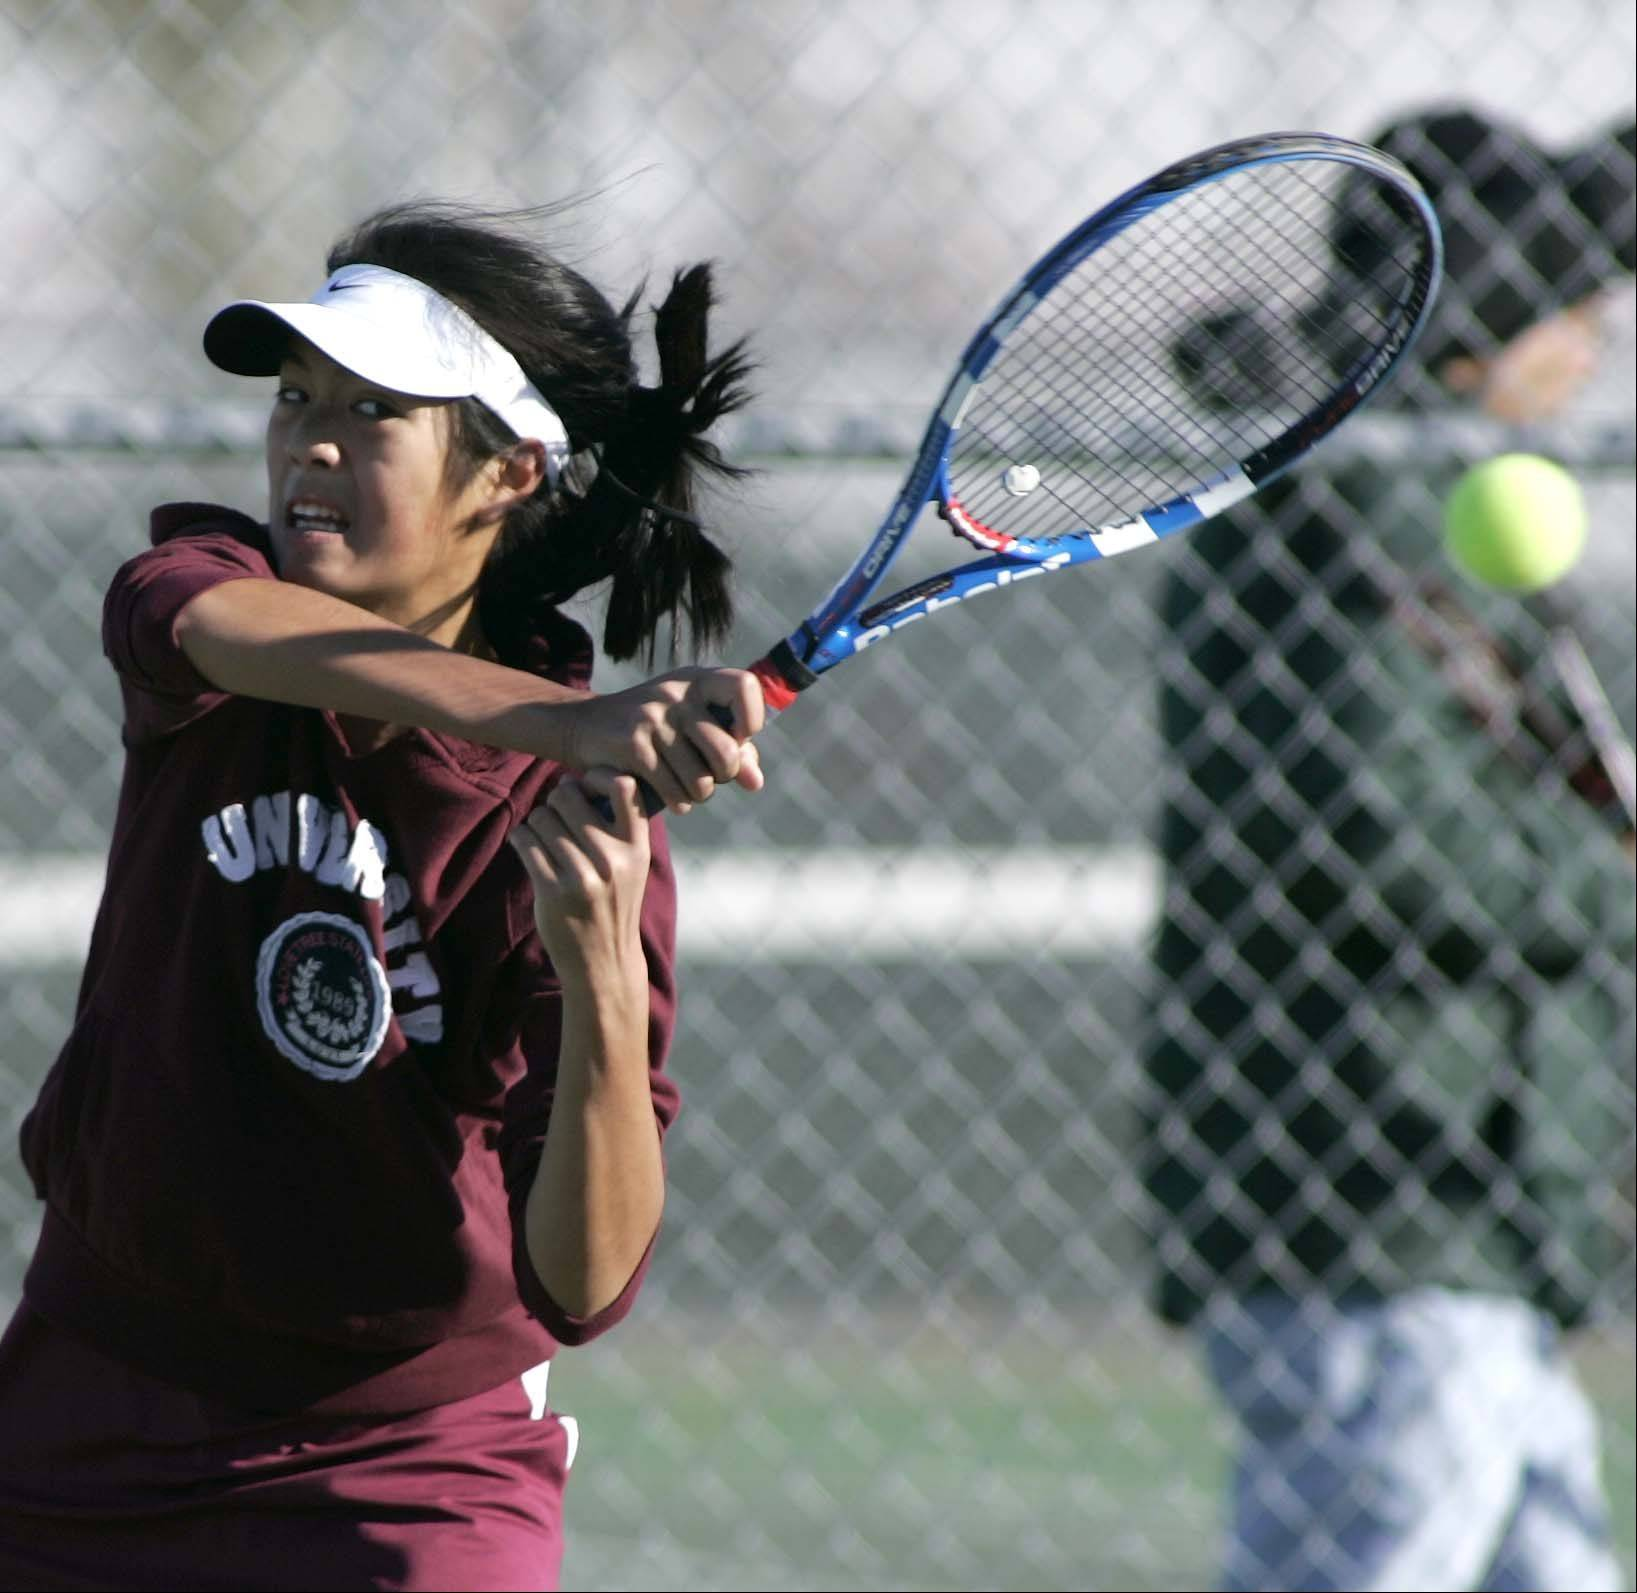 Elgin's Dahlia Keonavongsa during the Upstate Eight Rive tennis meet Saturday October 6, 2012 at Elgin High School.